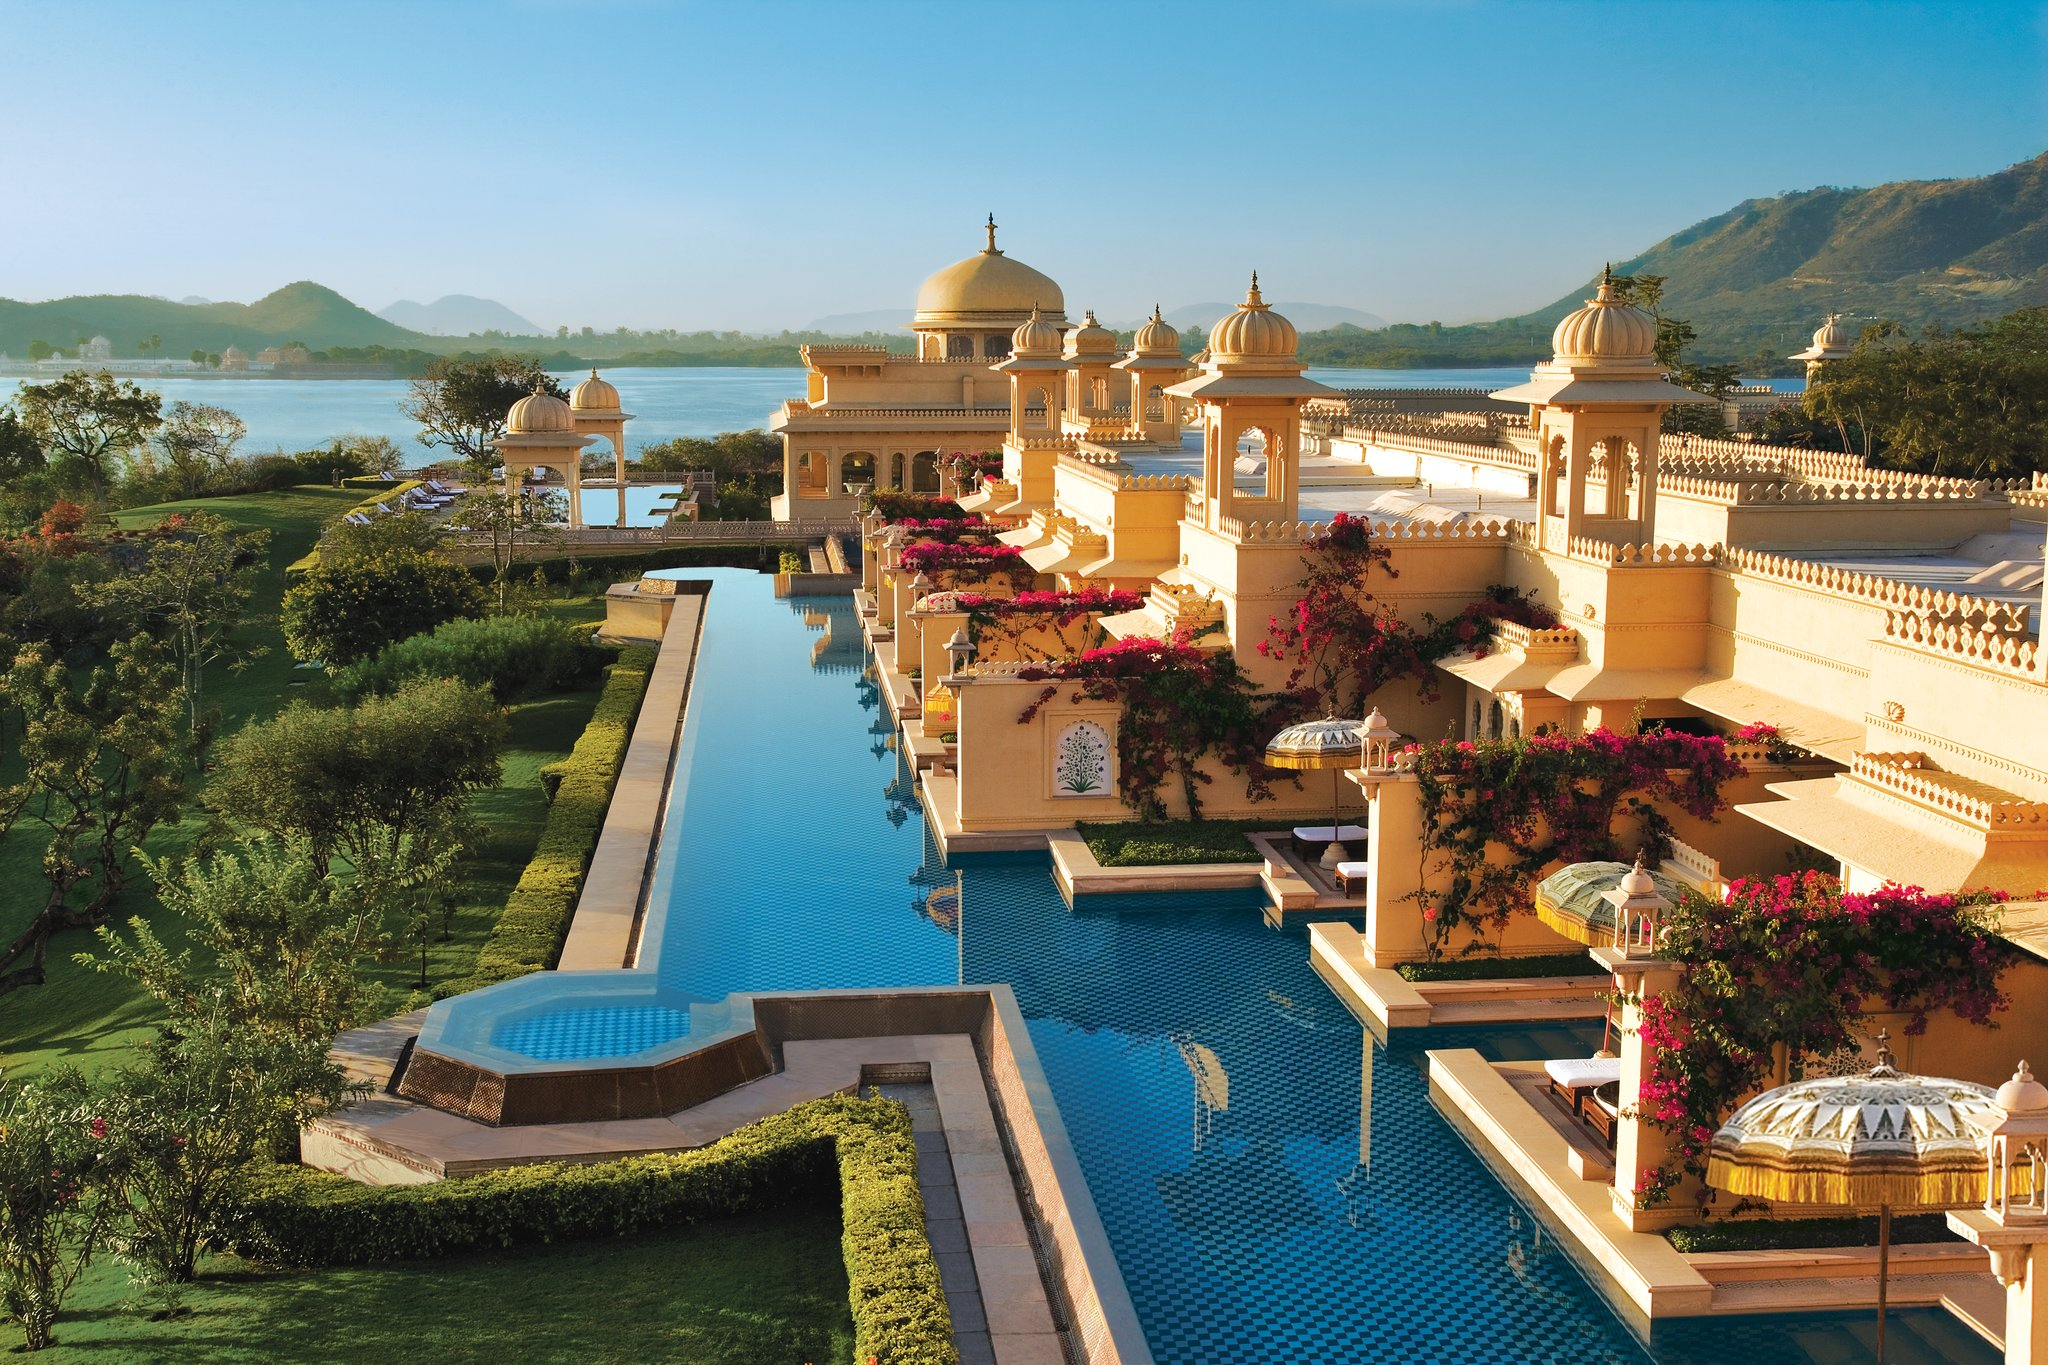 Sunrise over the deluxe rooms with semi private pool at the luxurious honeymoon destination Udaivilâs Oberoi Hotel. Udaipur.